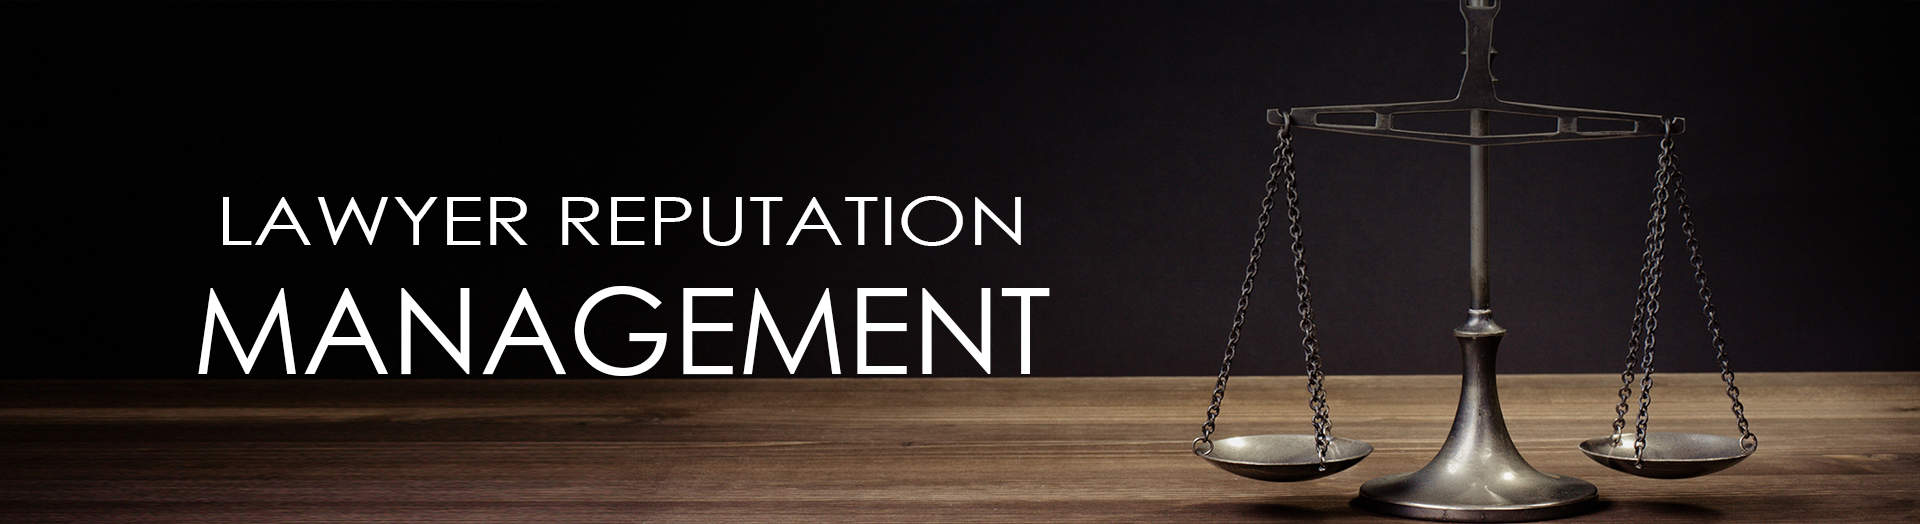 Lawyer Reputation Management Services